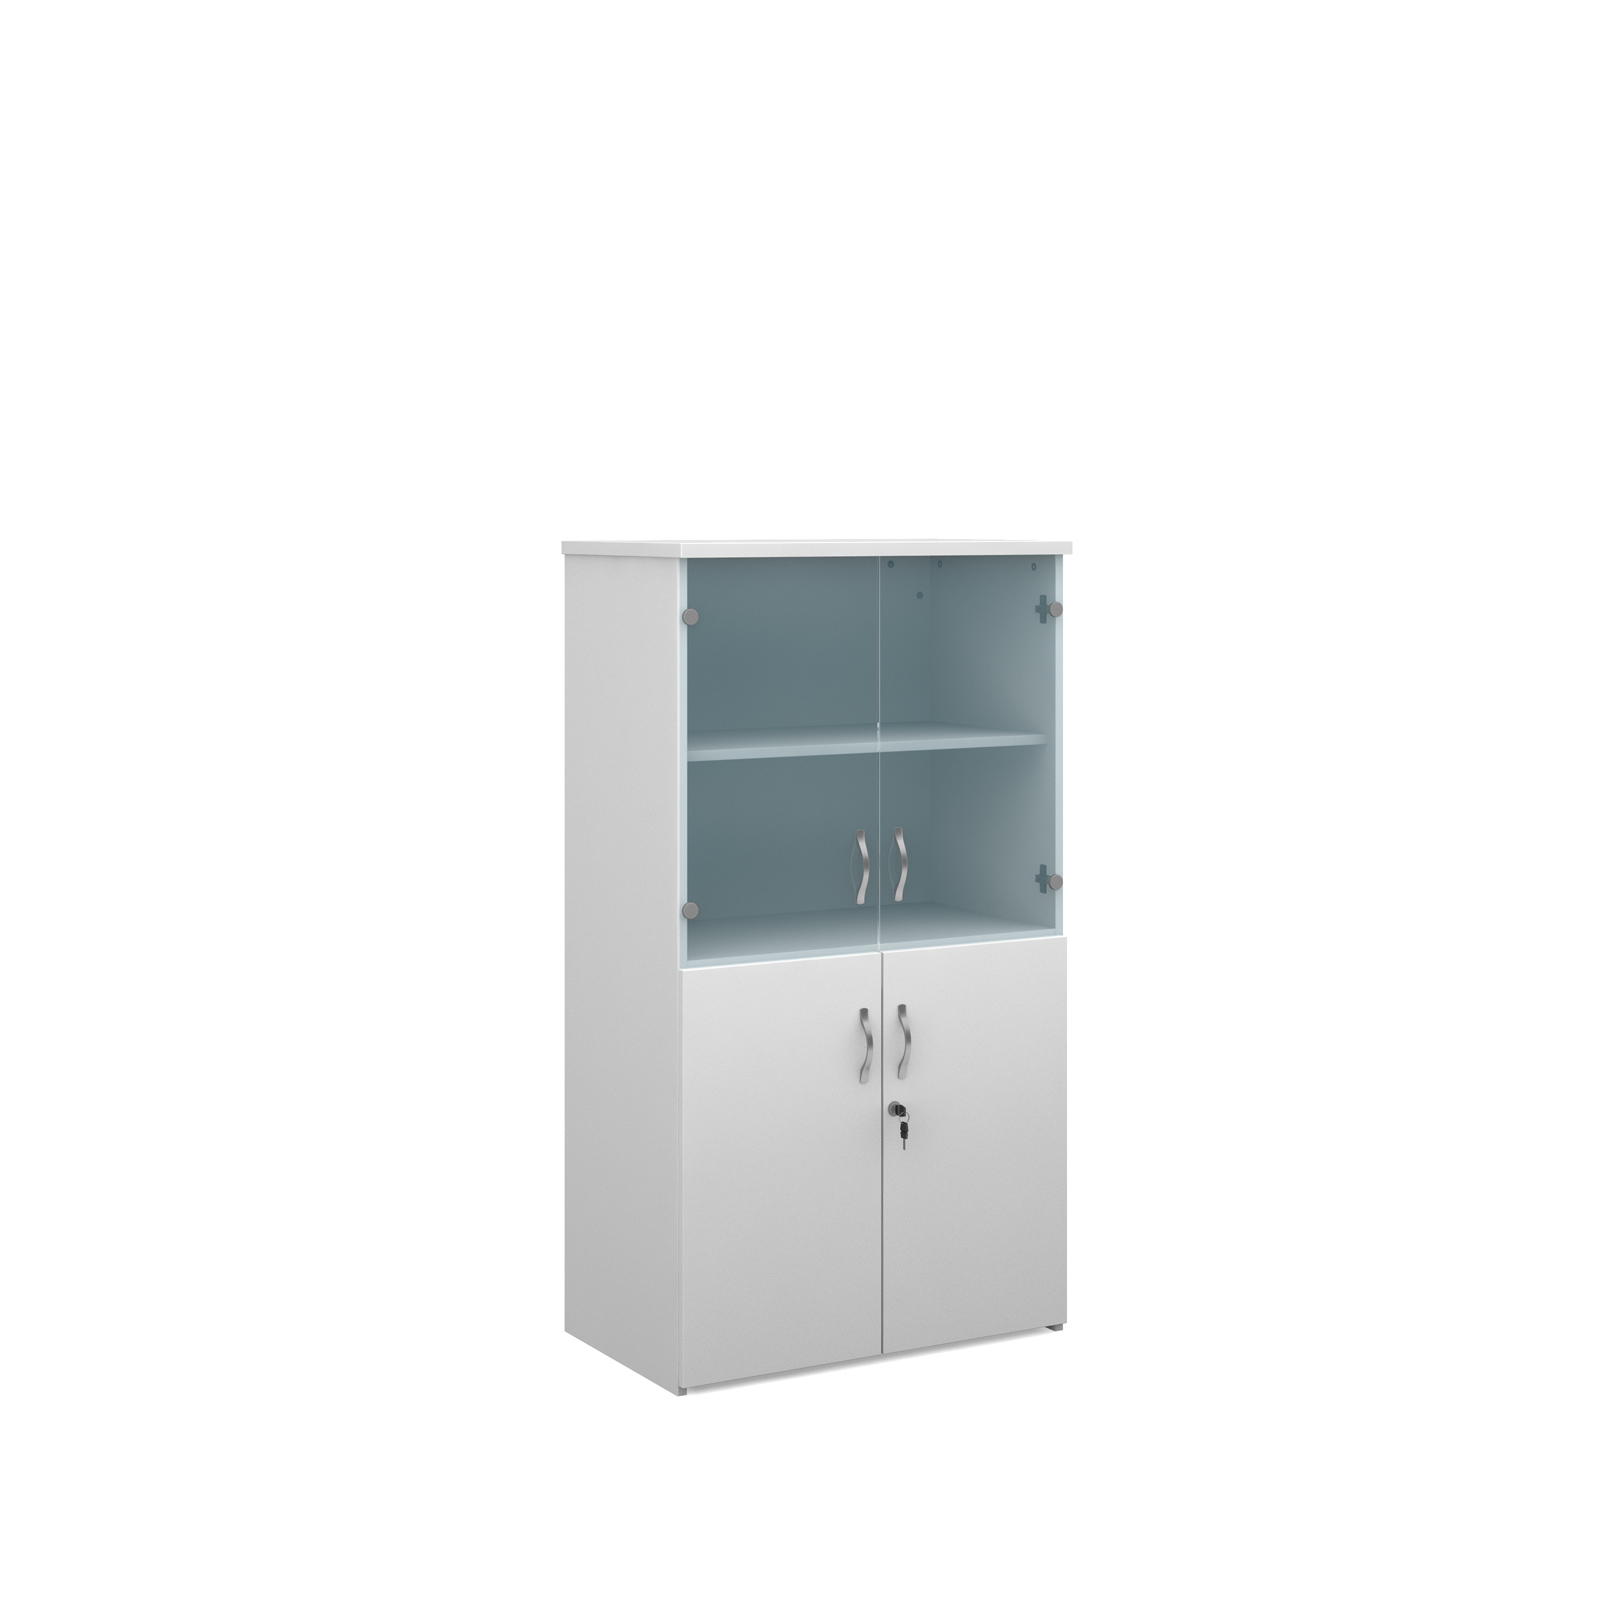 1440mm high combination unit with glass and wood doors in white